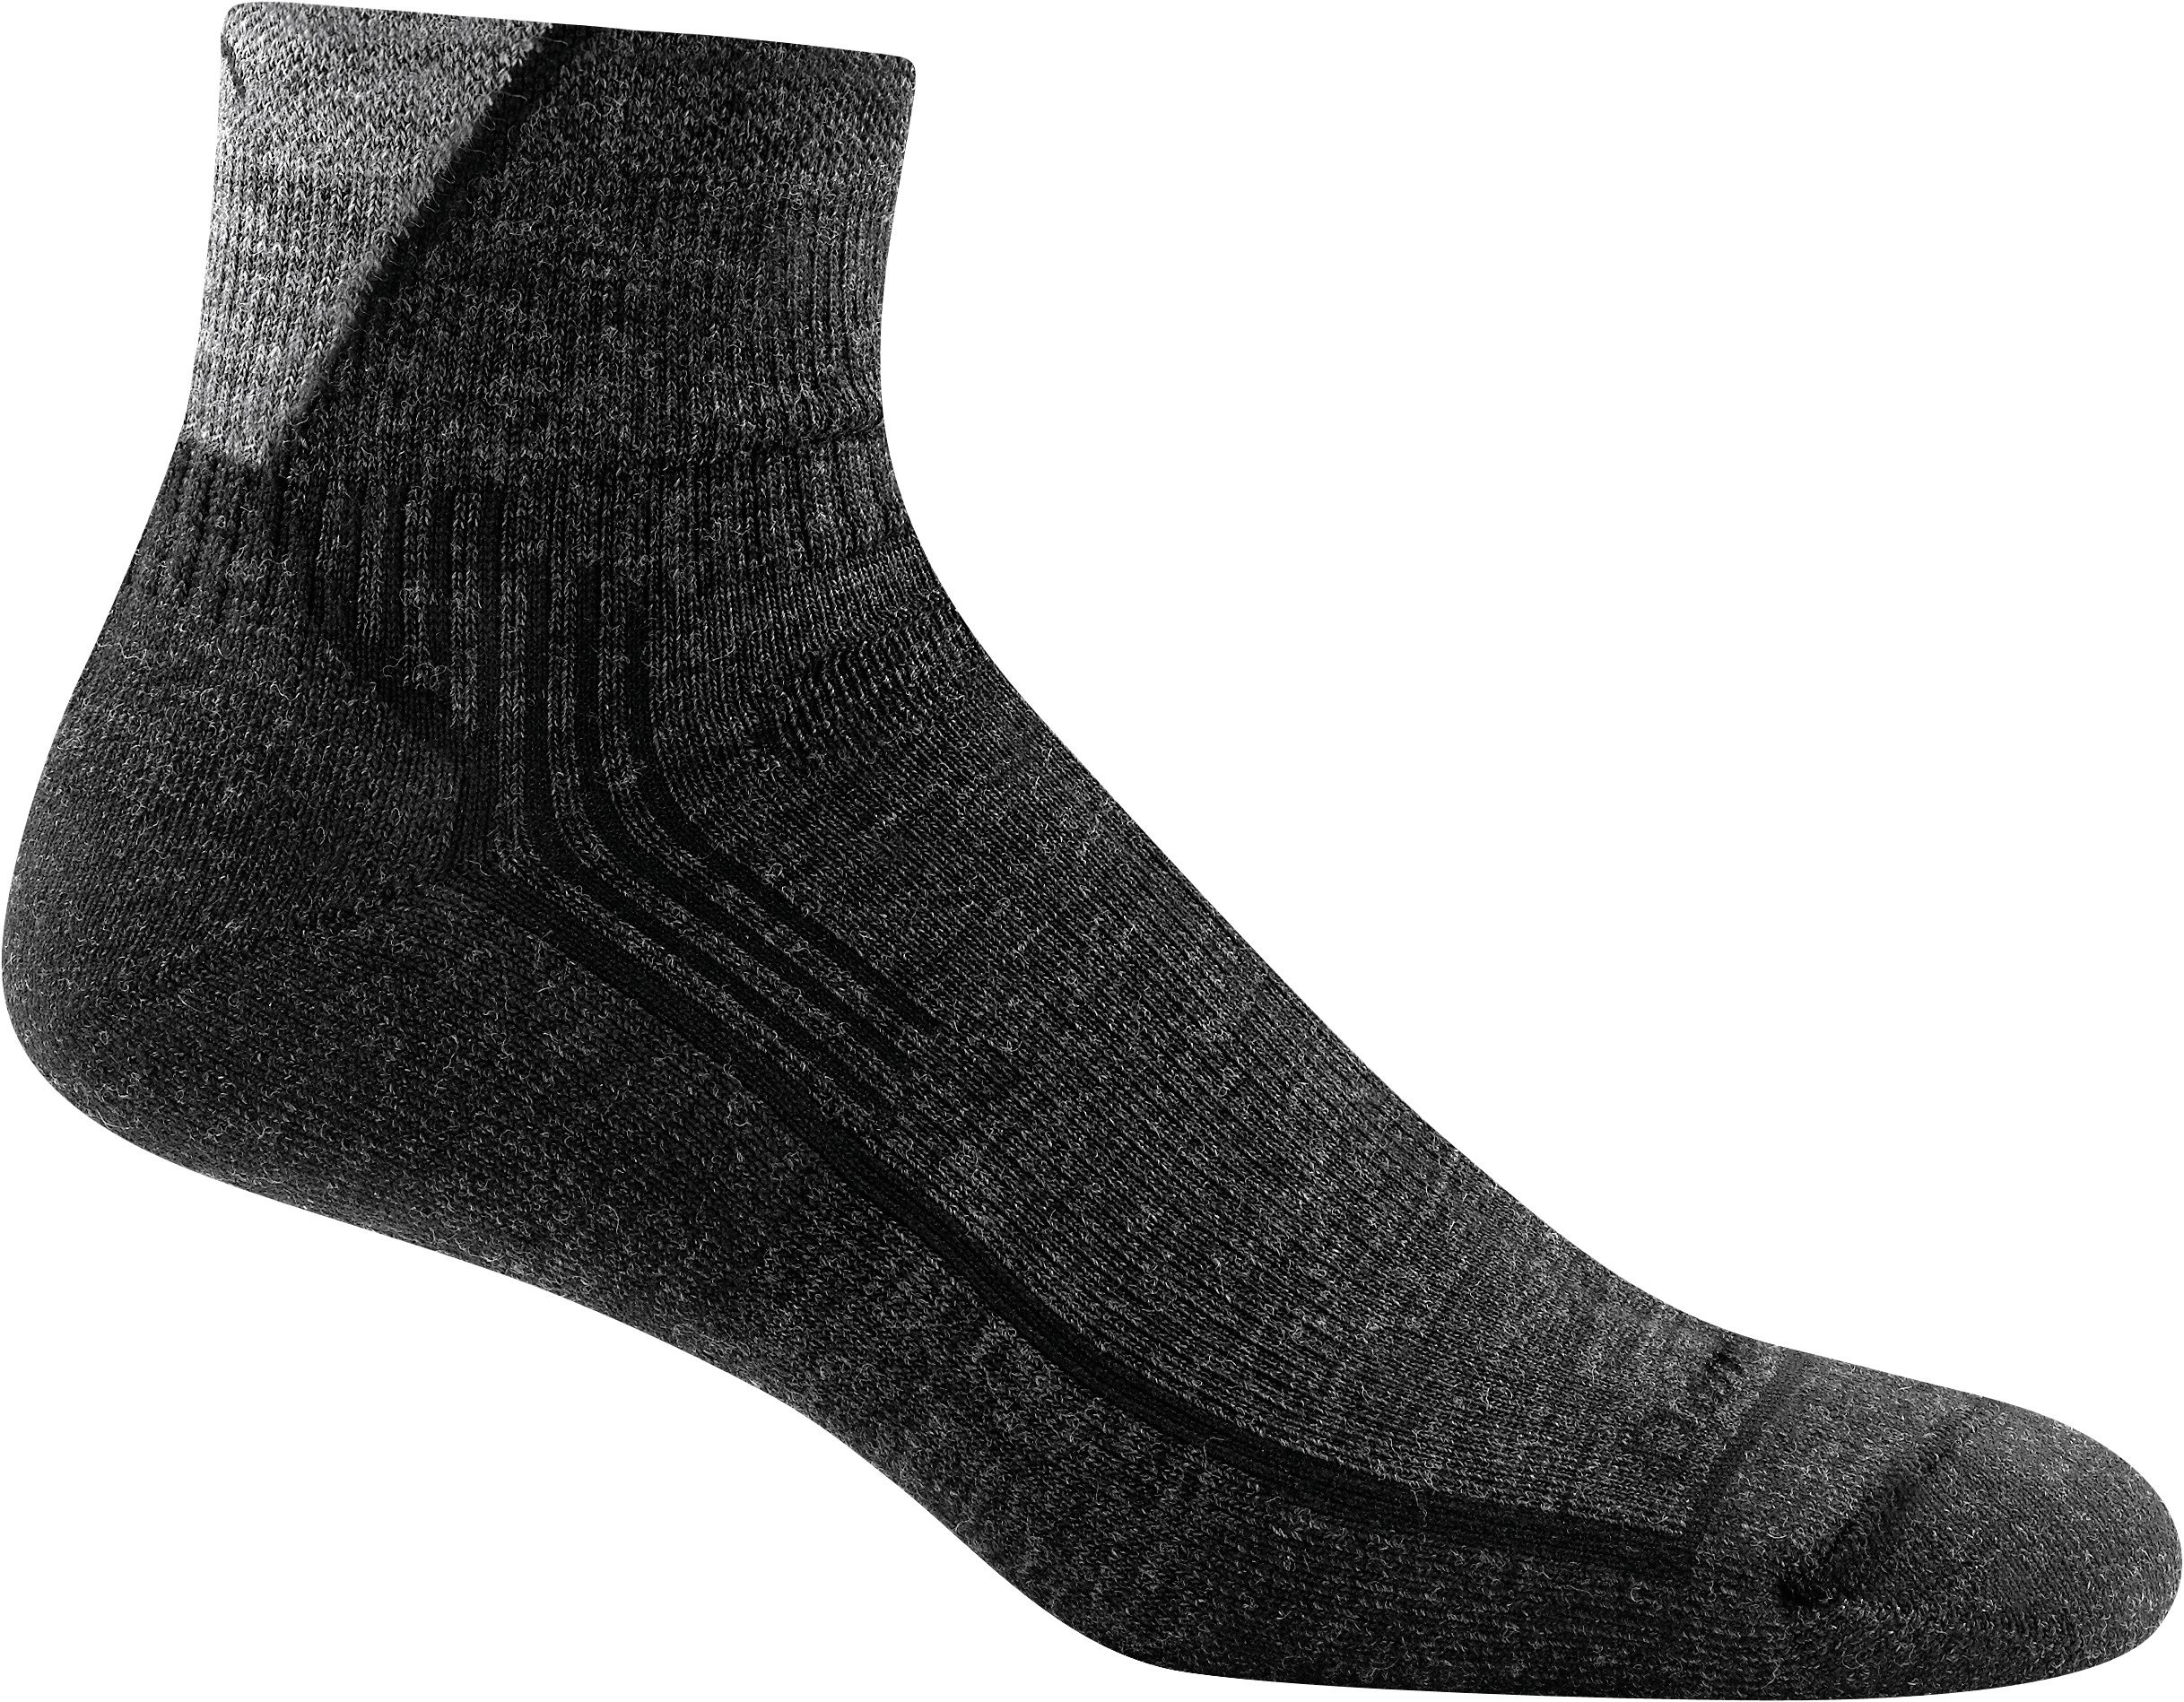 Darn Tough Men's Hiker 1/4 Sock Cushion (Style 1905) Merino Wool - 6 Pack Special (Black/Gray, Medium (8-9.5)) by Darn Tough